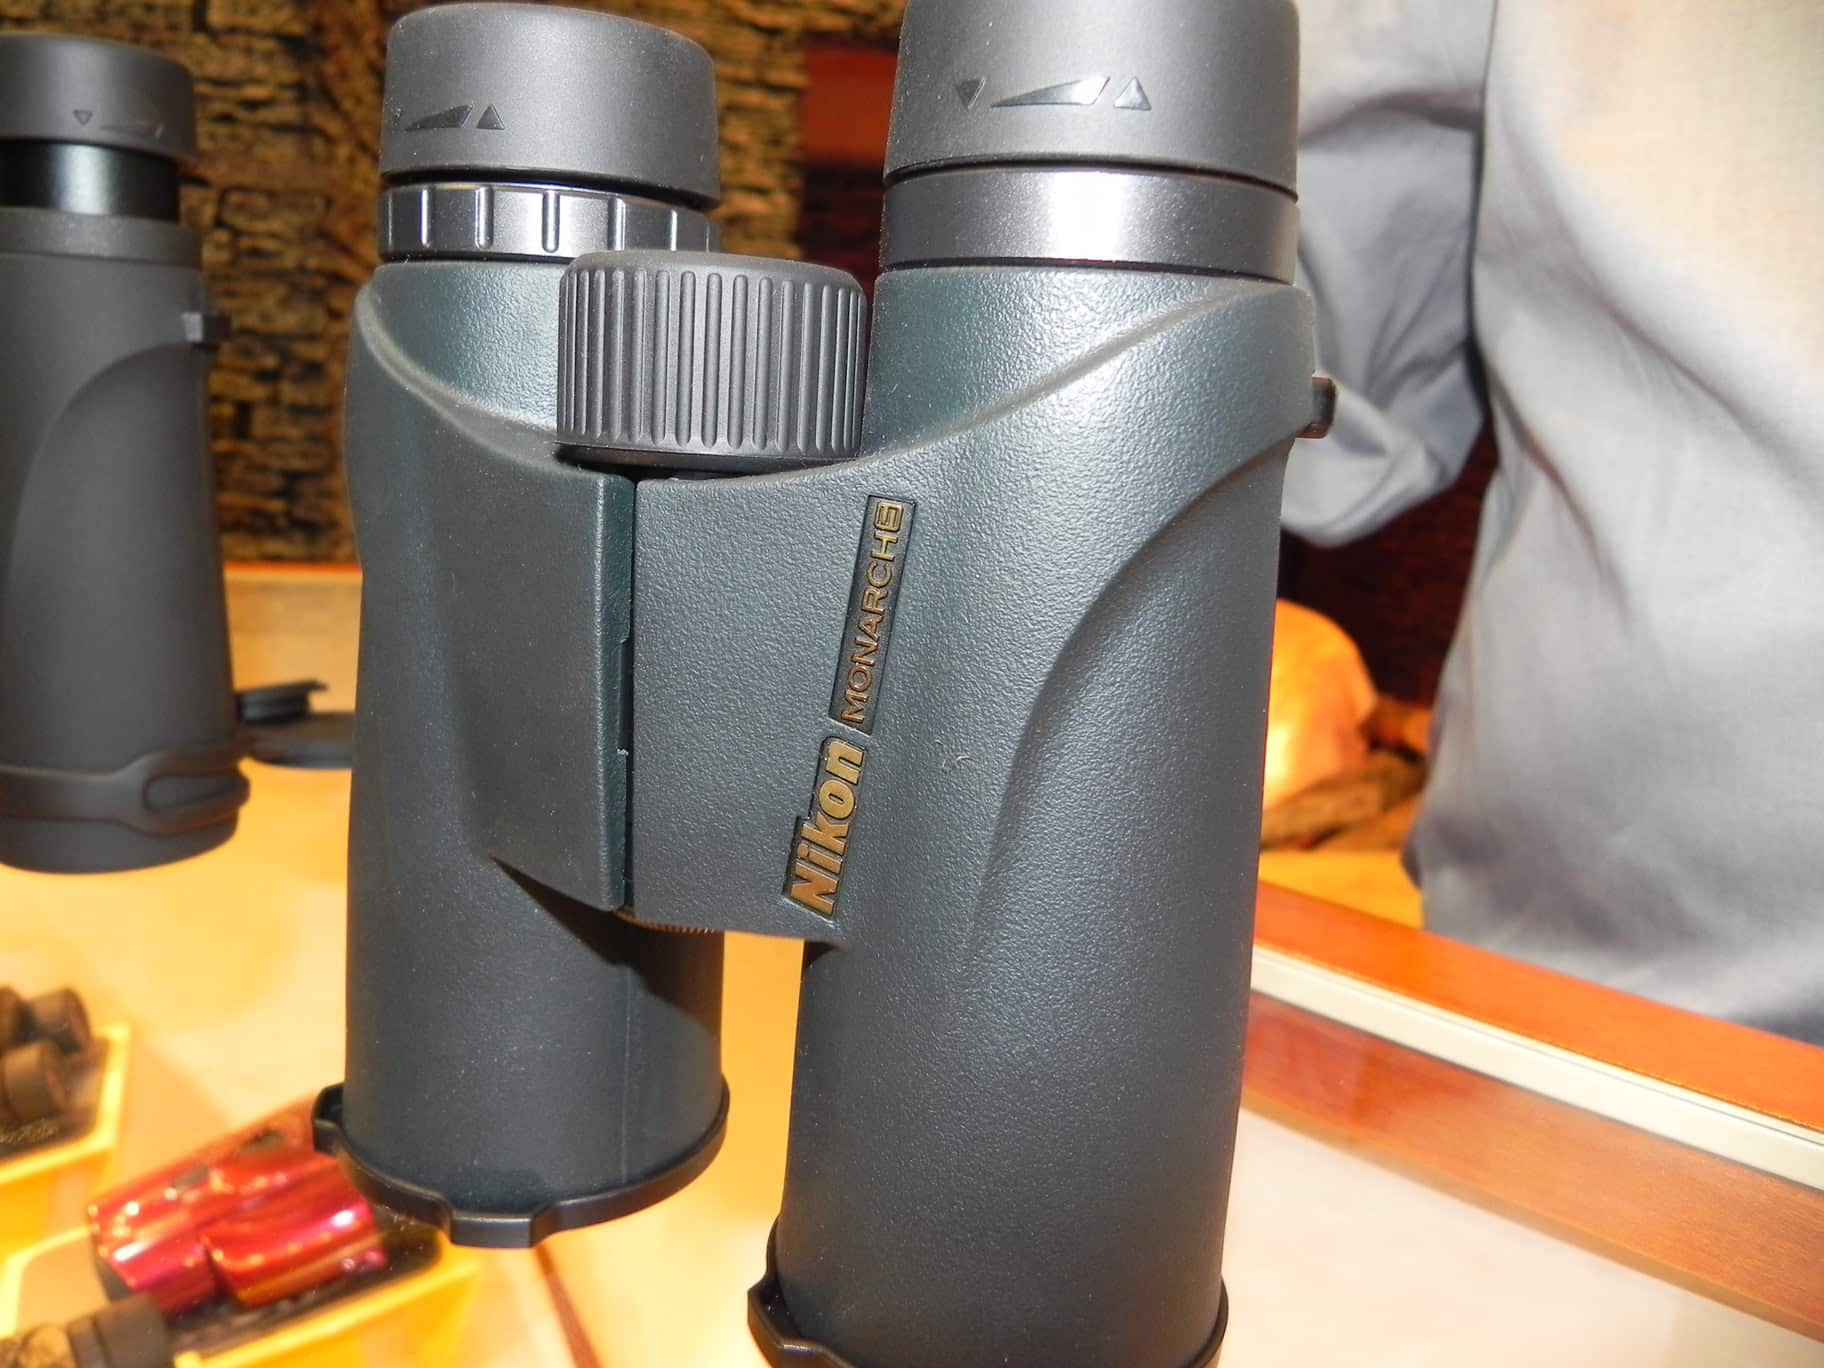 Nikon Monarch X Binocular - Compare Prices, Reviews and Buy at